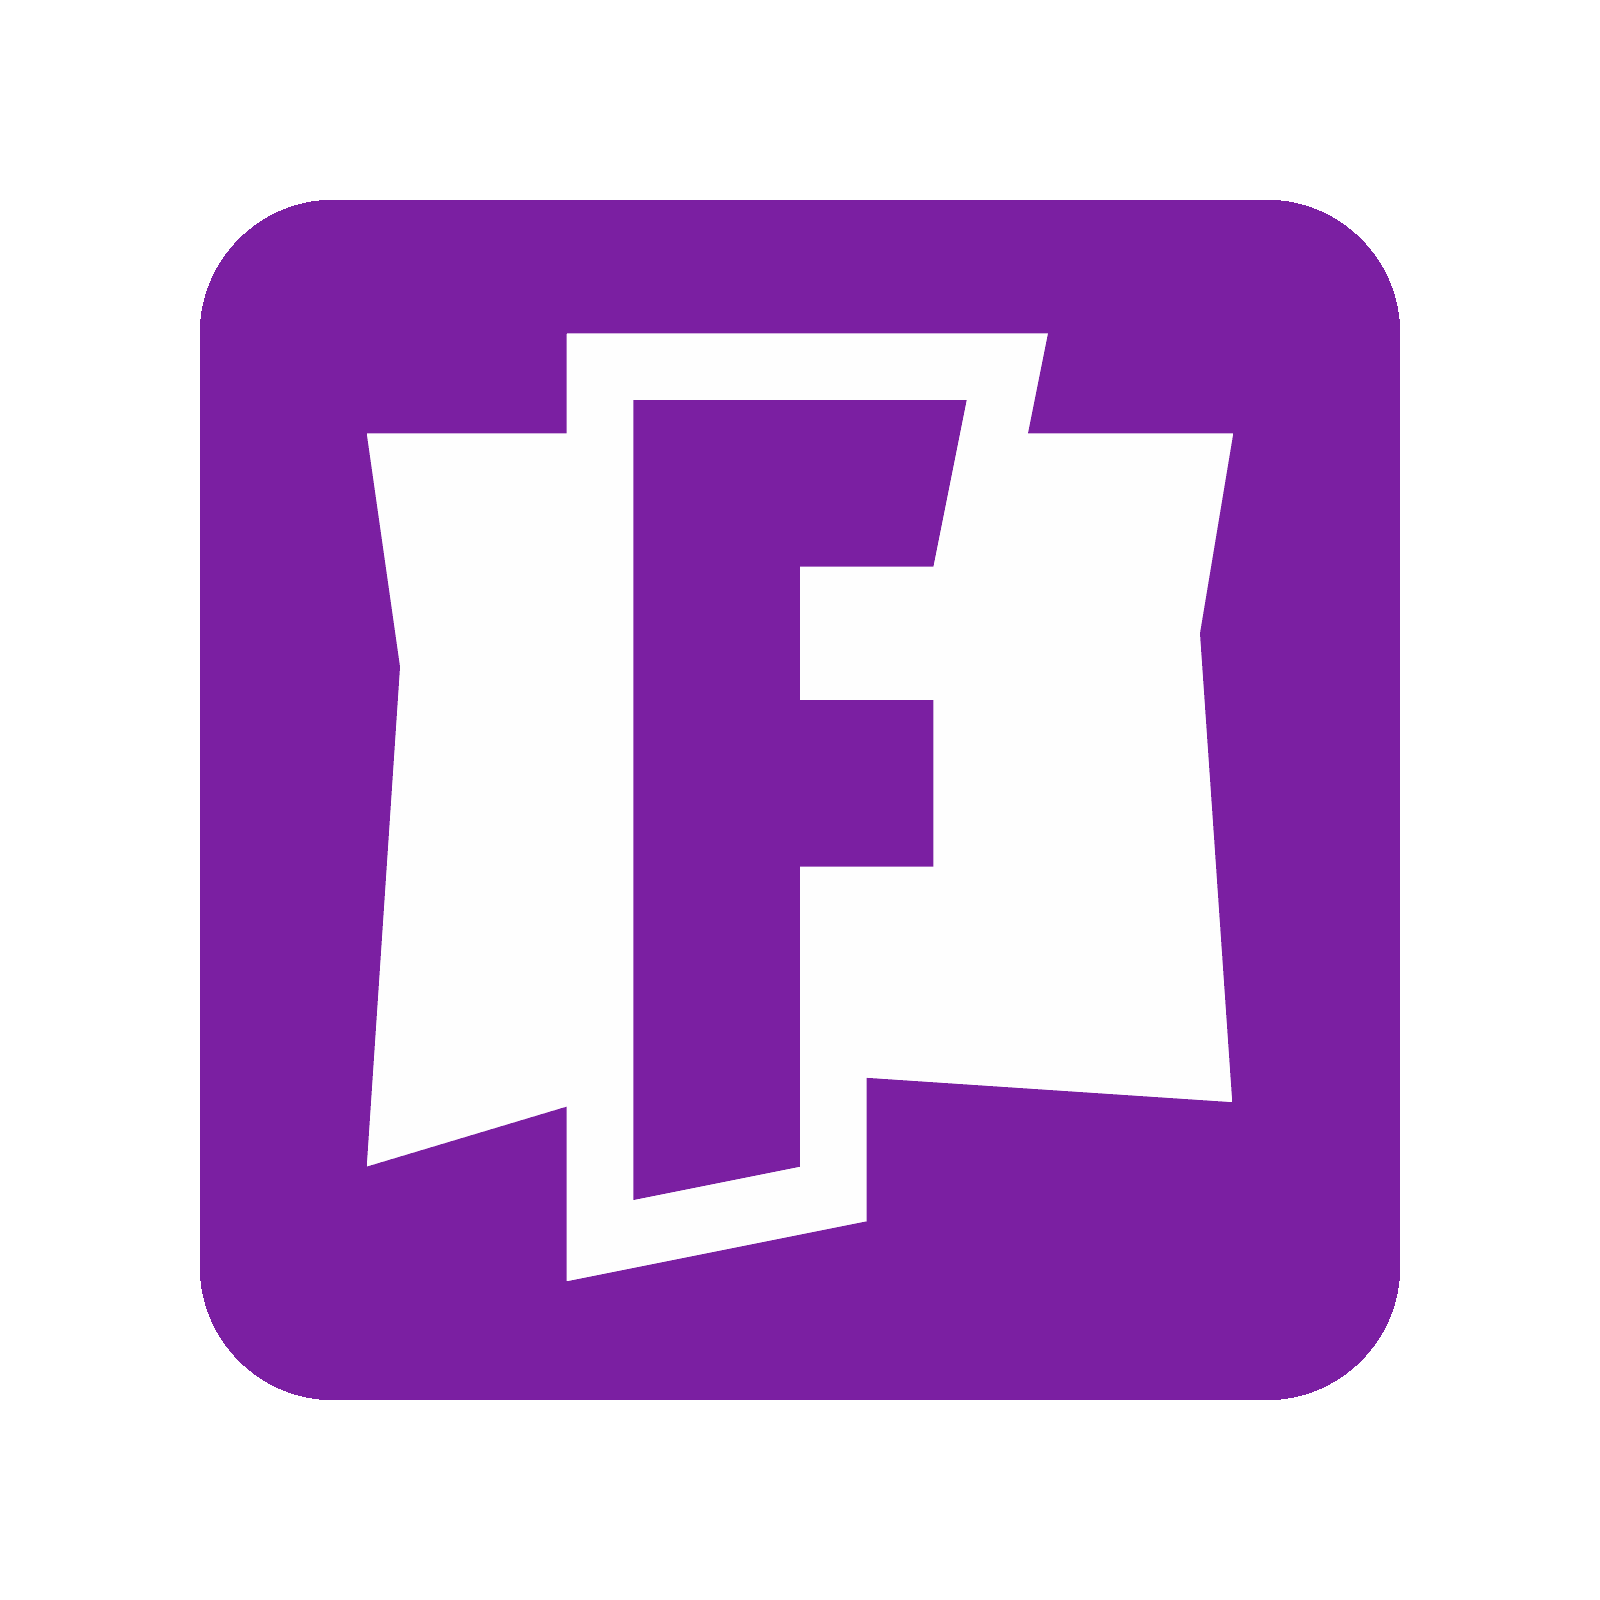 Fortnite Logo Graphic Design Png Transparent Background Free Download 47420 Freeiconspng